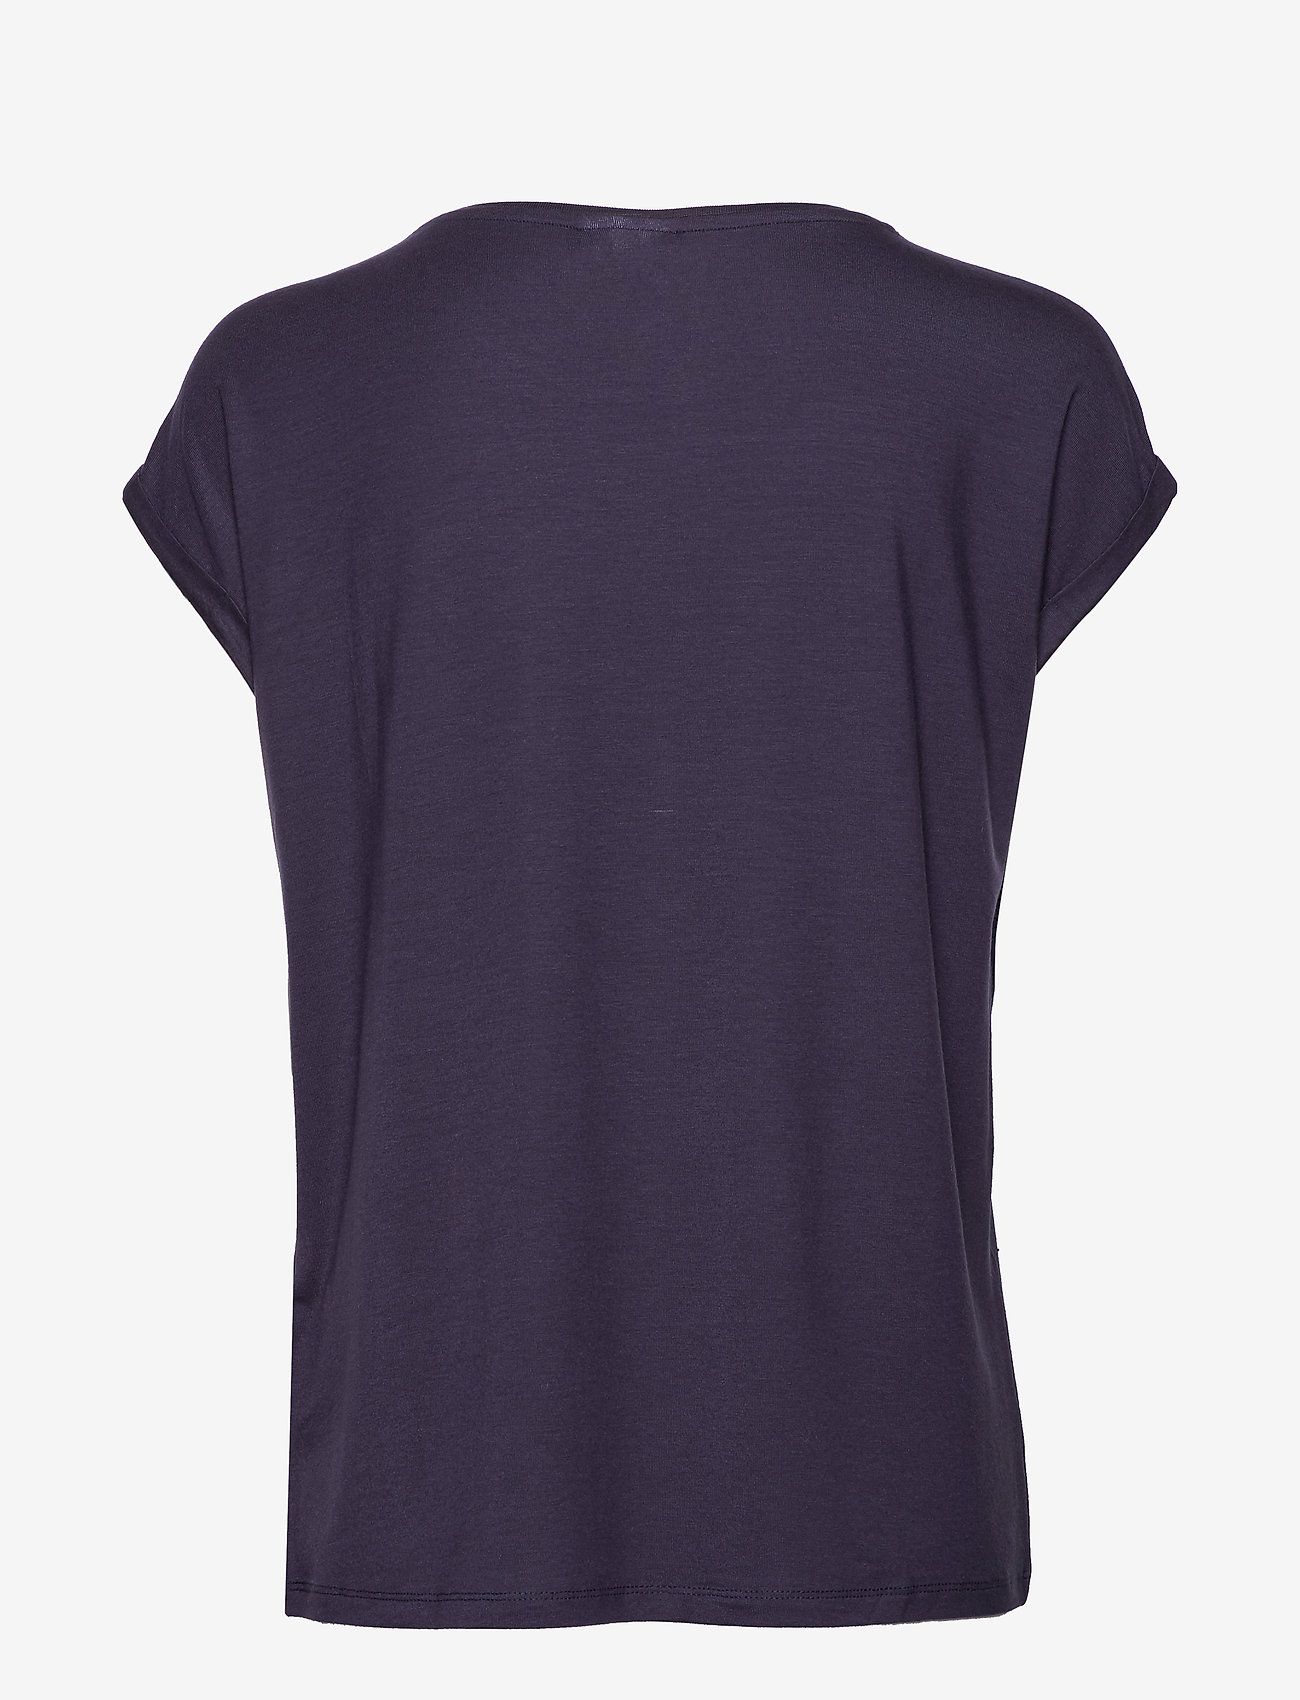 Vero Moda - VMAVA PLAIN SS TOP GA - t-shirts - night sky - 1